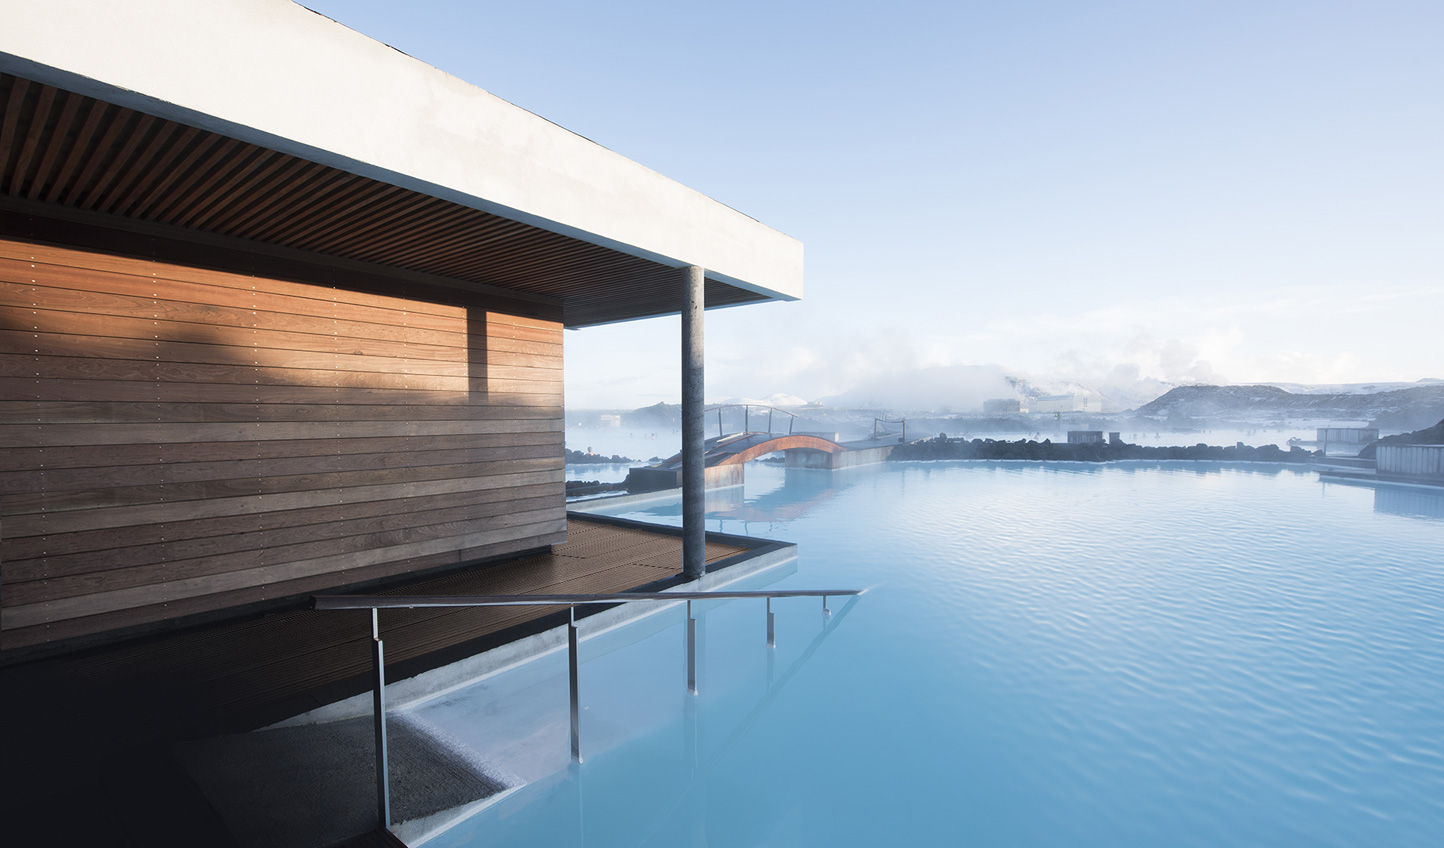 An unbeatable location on the volcanic shores of the Blue Lagoon